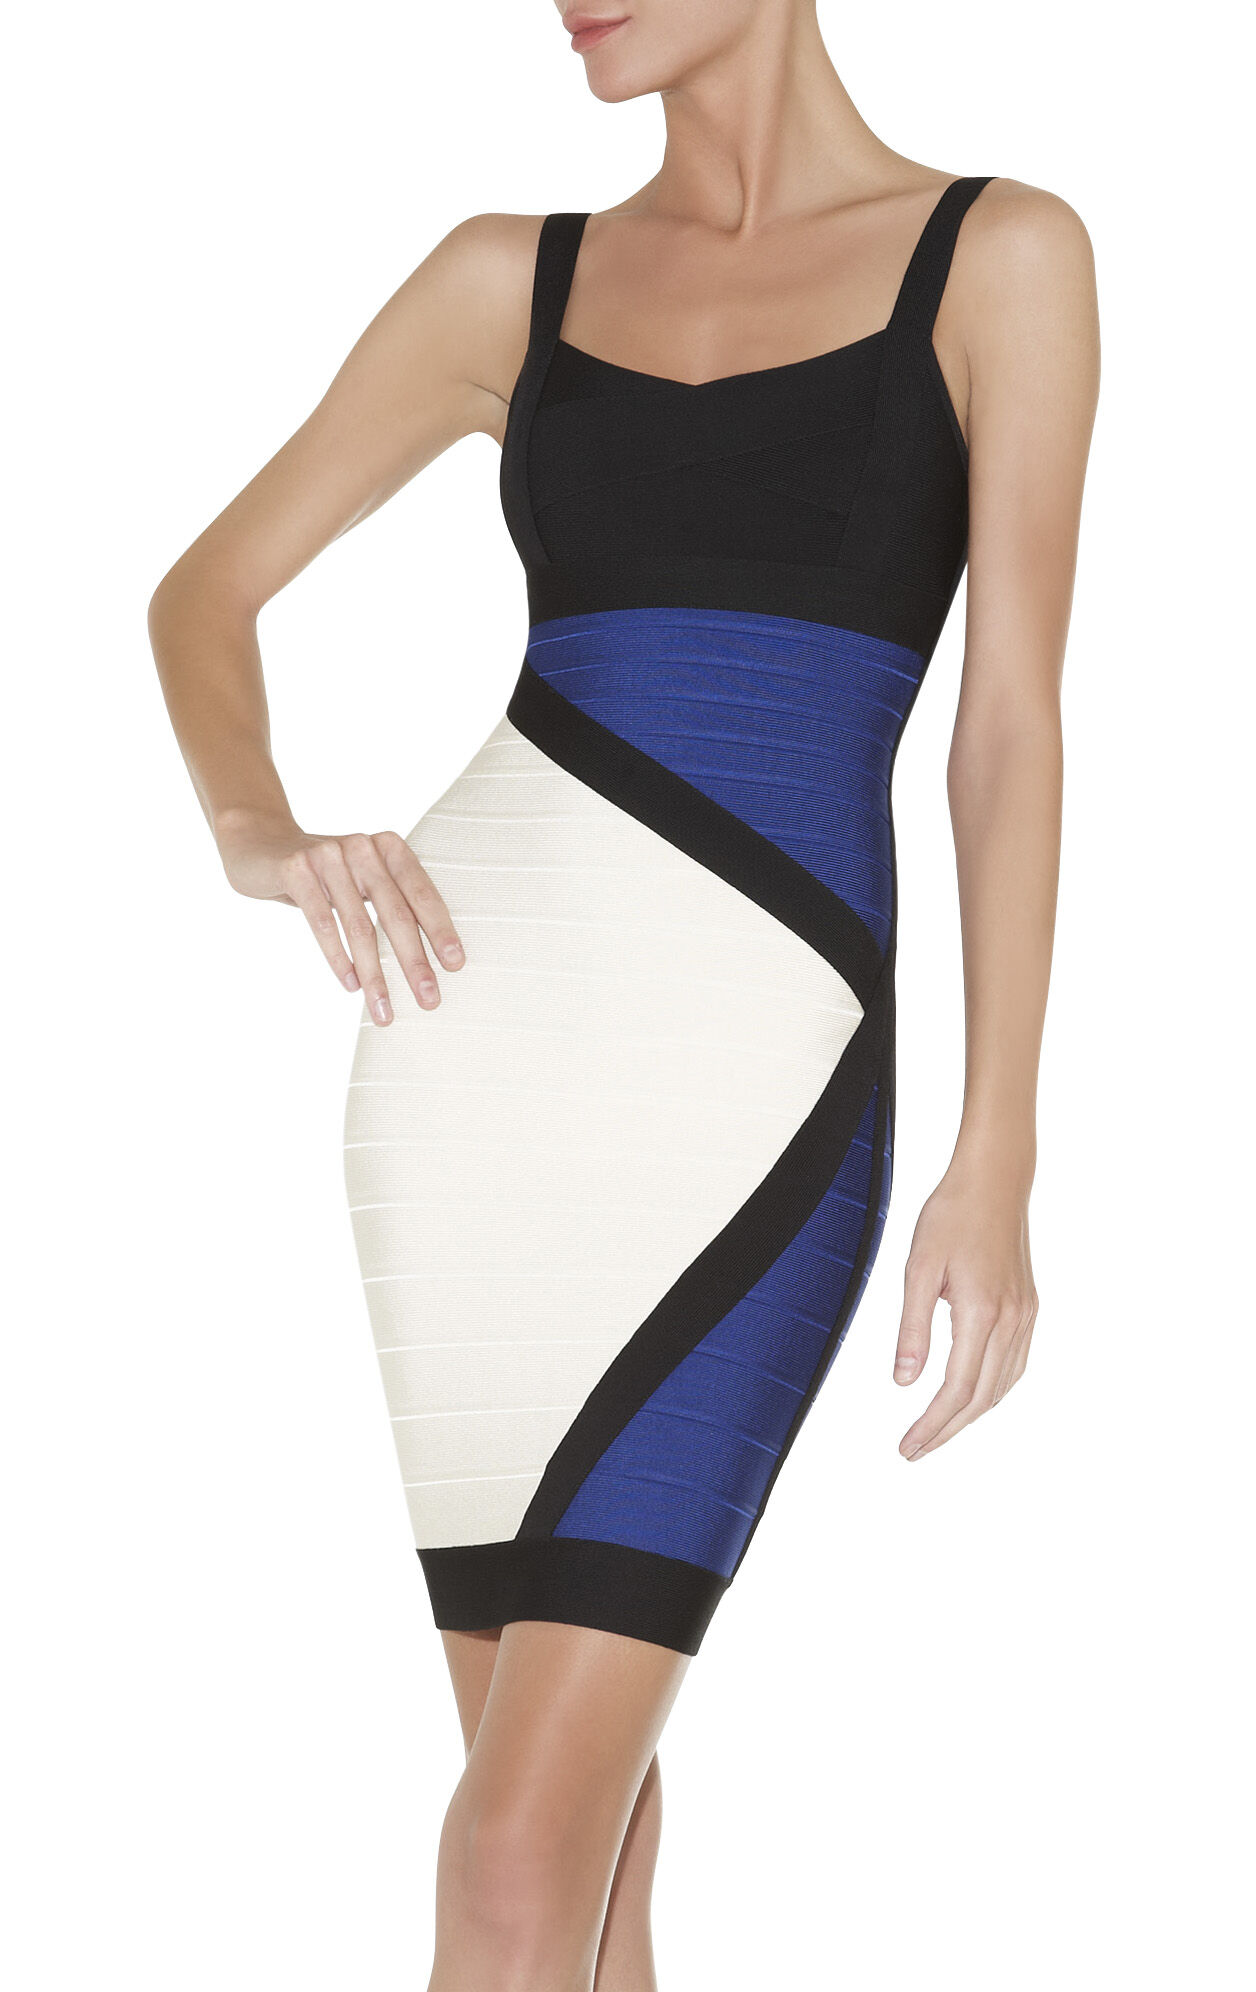 Reona Colorblocked Bandage Dress